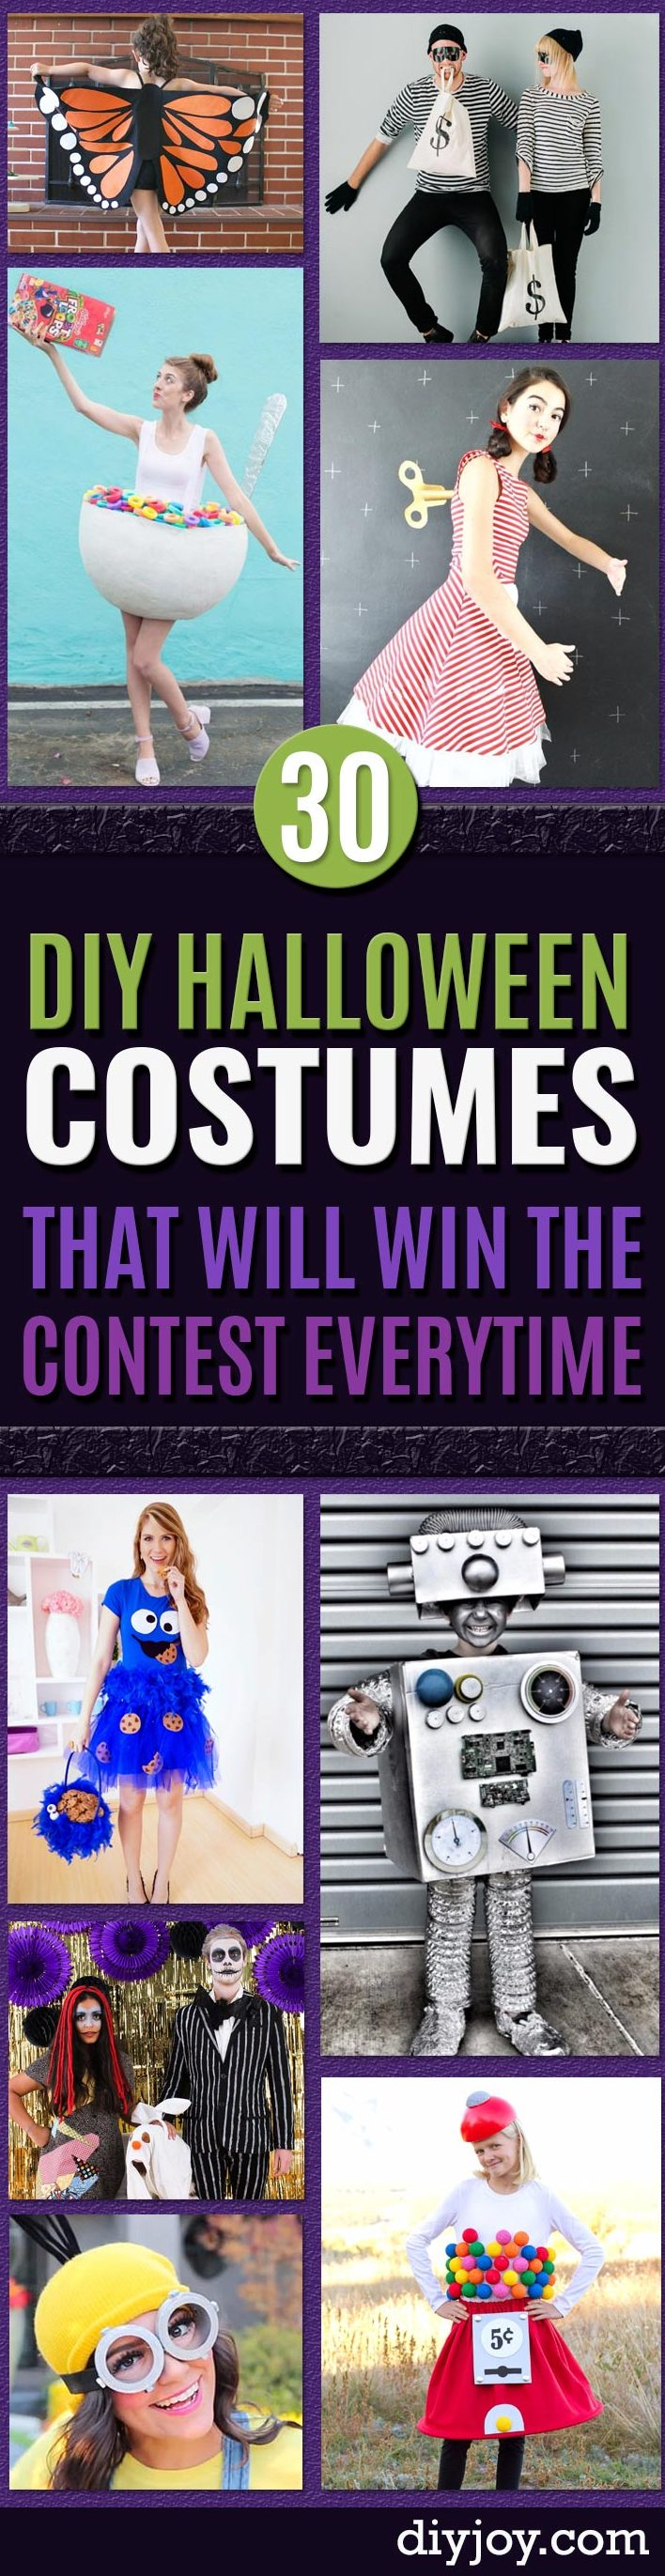 Best DIY Halloween Costume Ideas - Do It Yourself Costumes for Women, Men, Teens, Adults and Couples. Fun, Easy, Clever, Cheap and Creative Costumes That Will Win The Contest